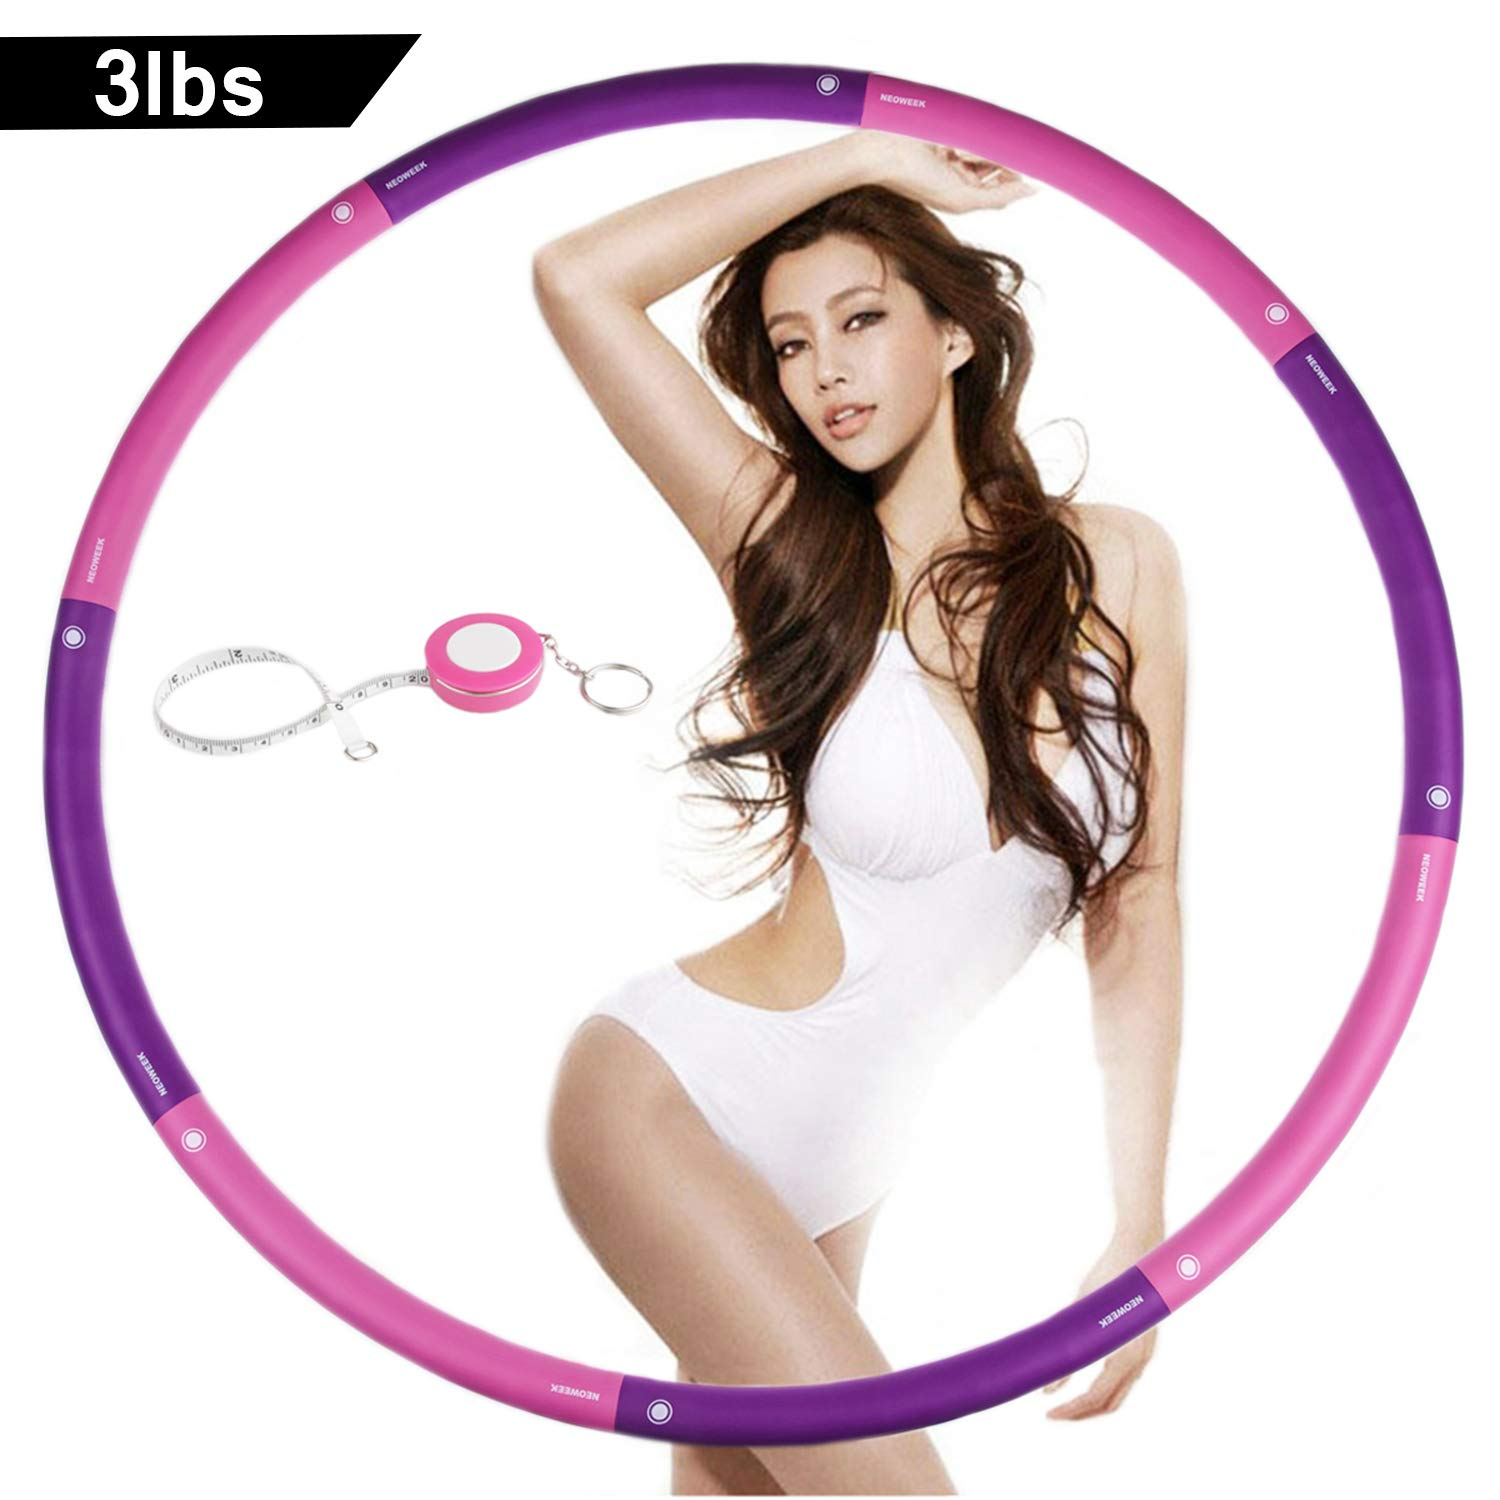 NEOWEEK | Upgraded | Weighted Hula Hoops for Exercise - 3lb, Professional Adult Hula Hoop for Weight Loss (Pink-Purple)